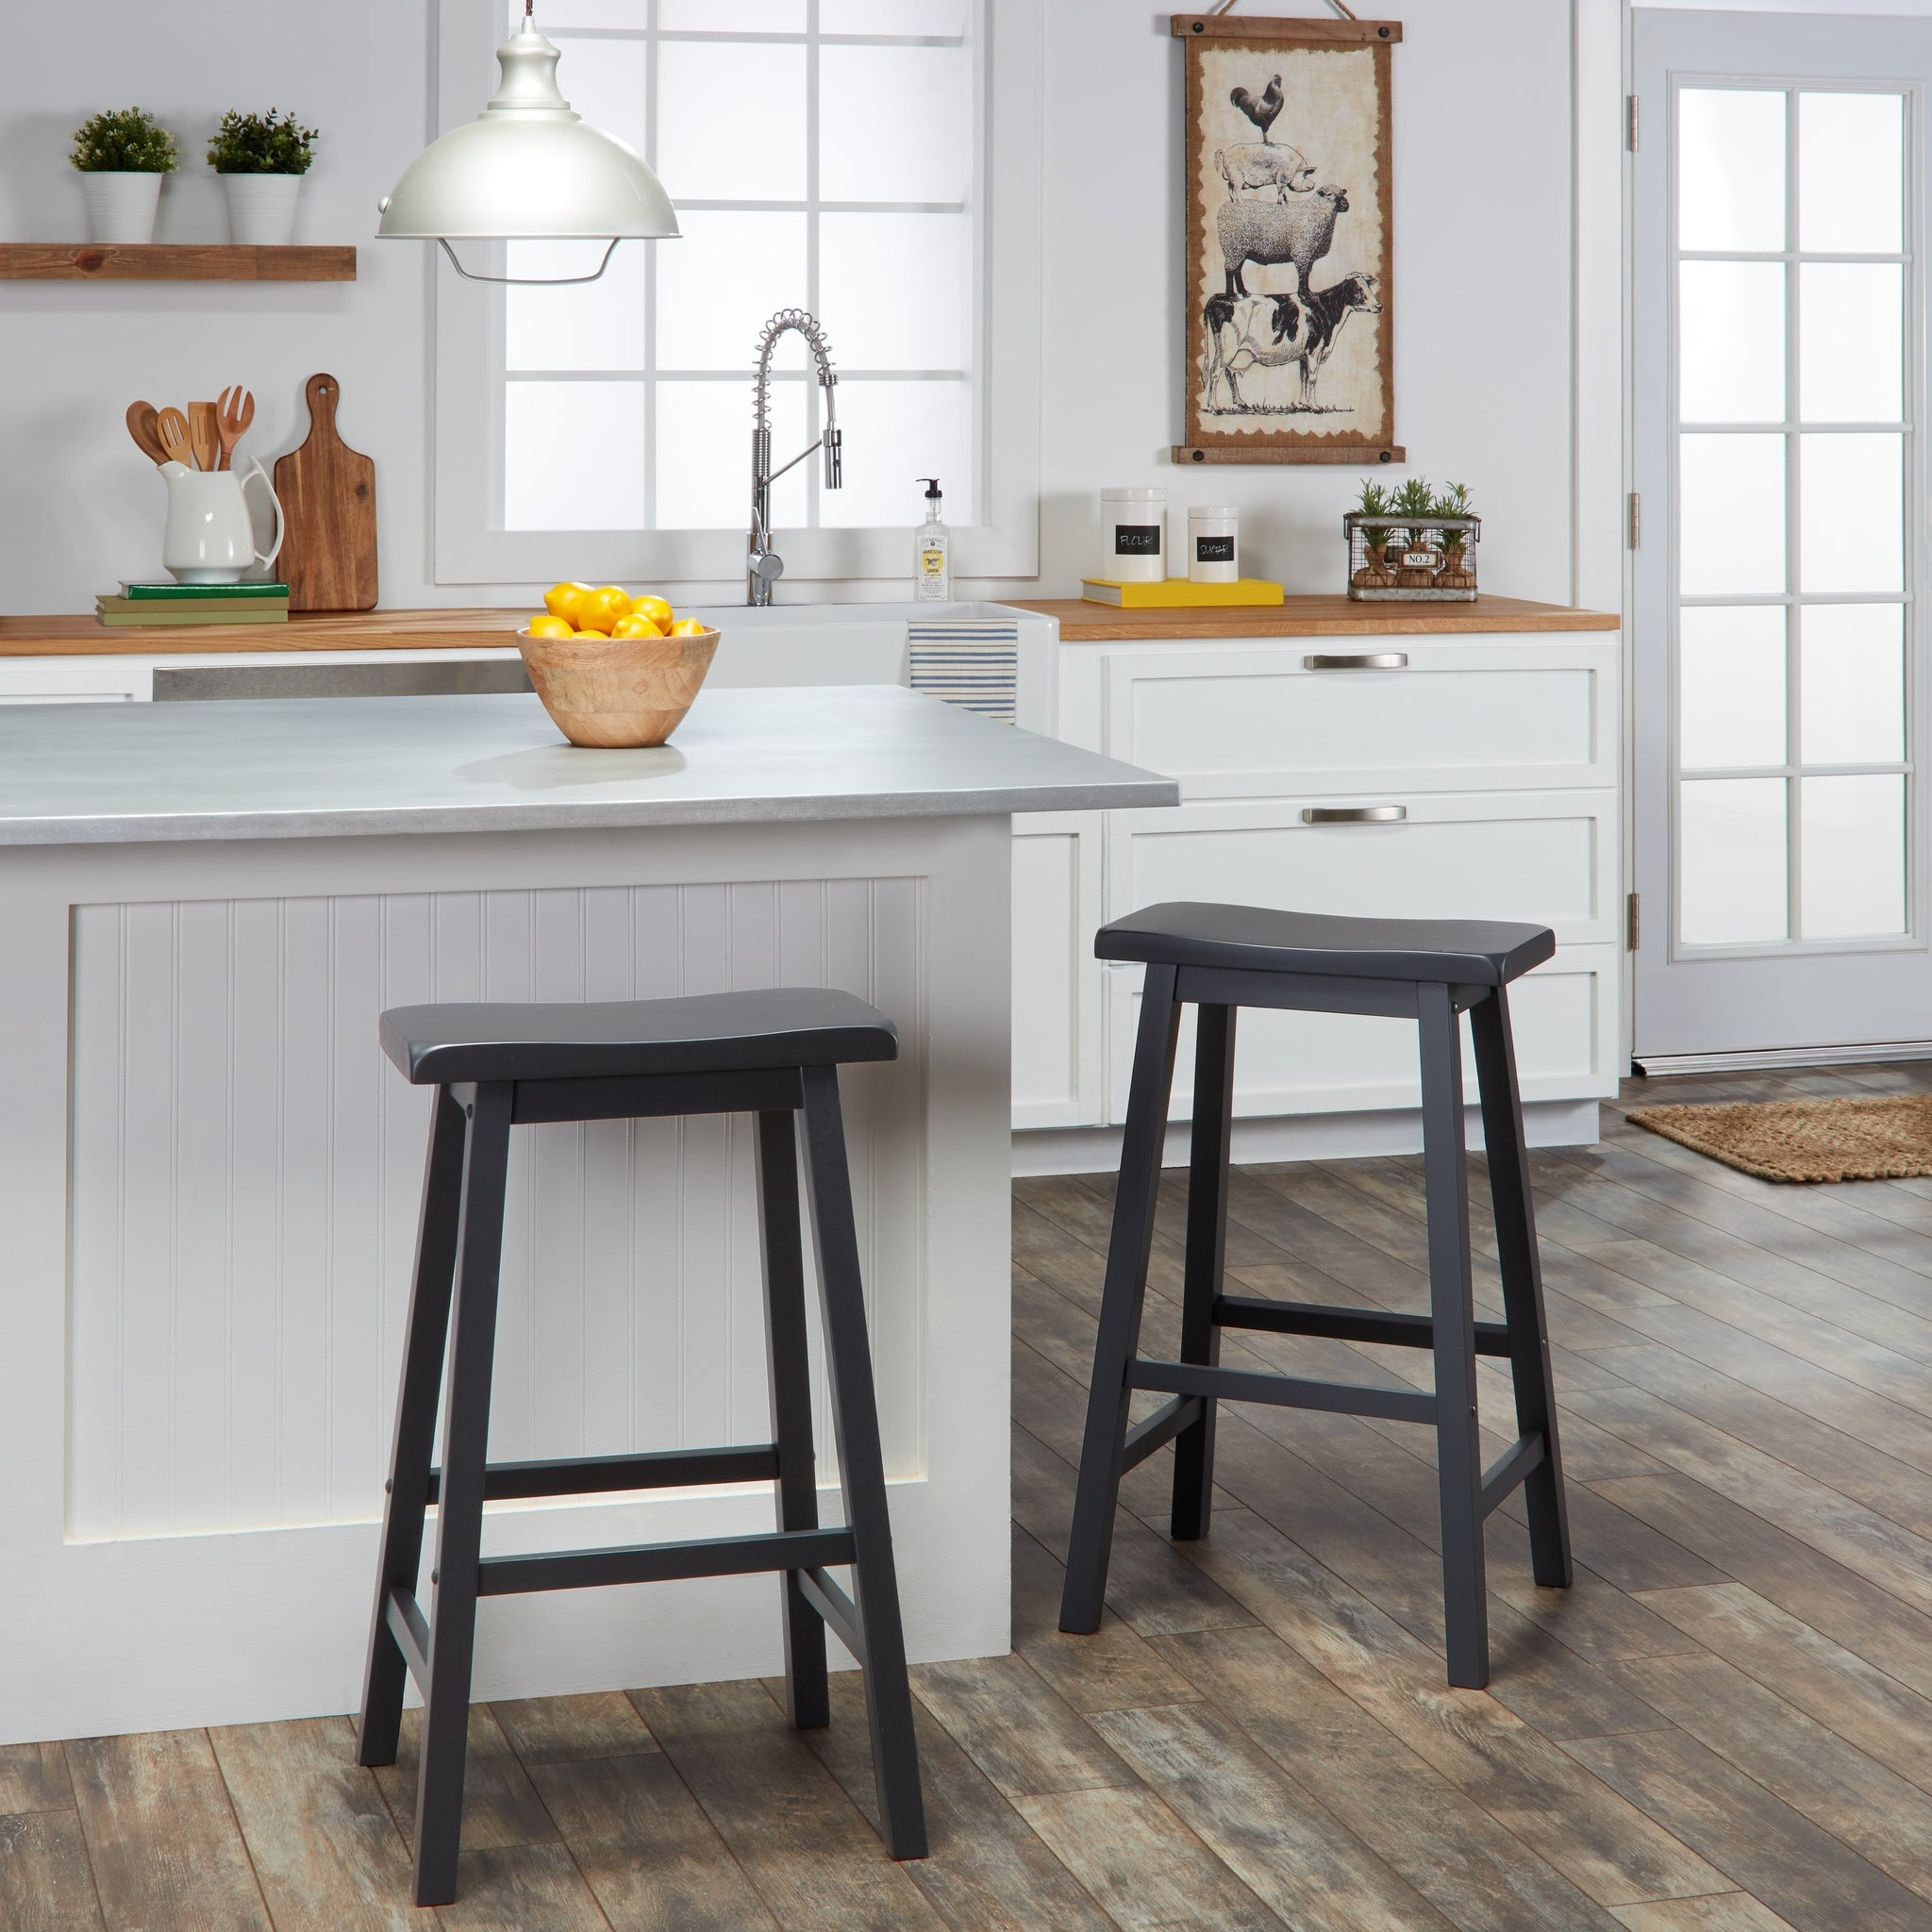 29-inch Counter Height Backless Stools (Set of 2)